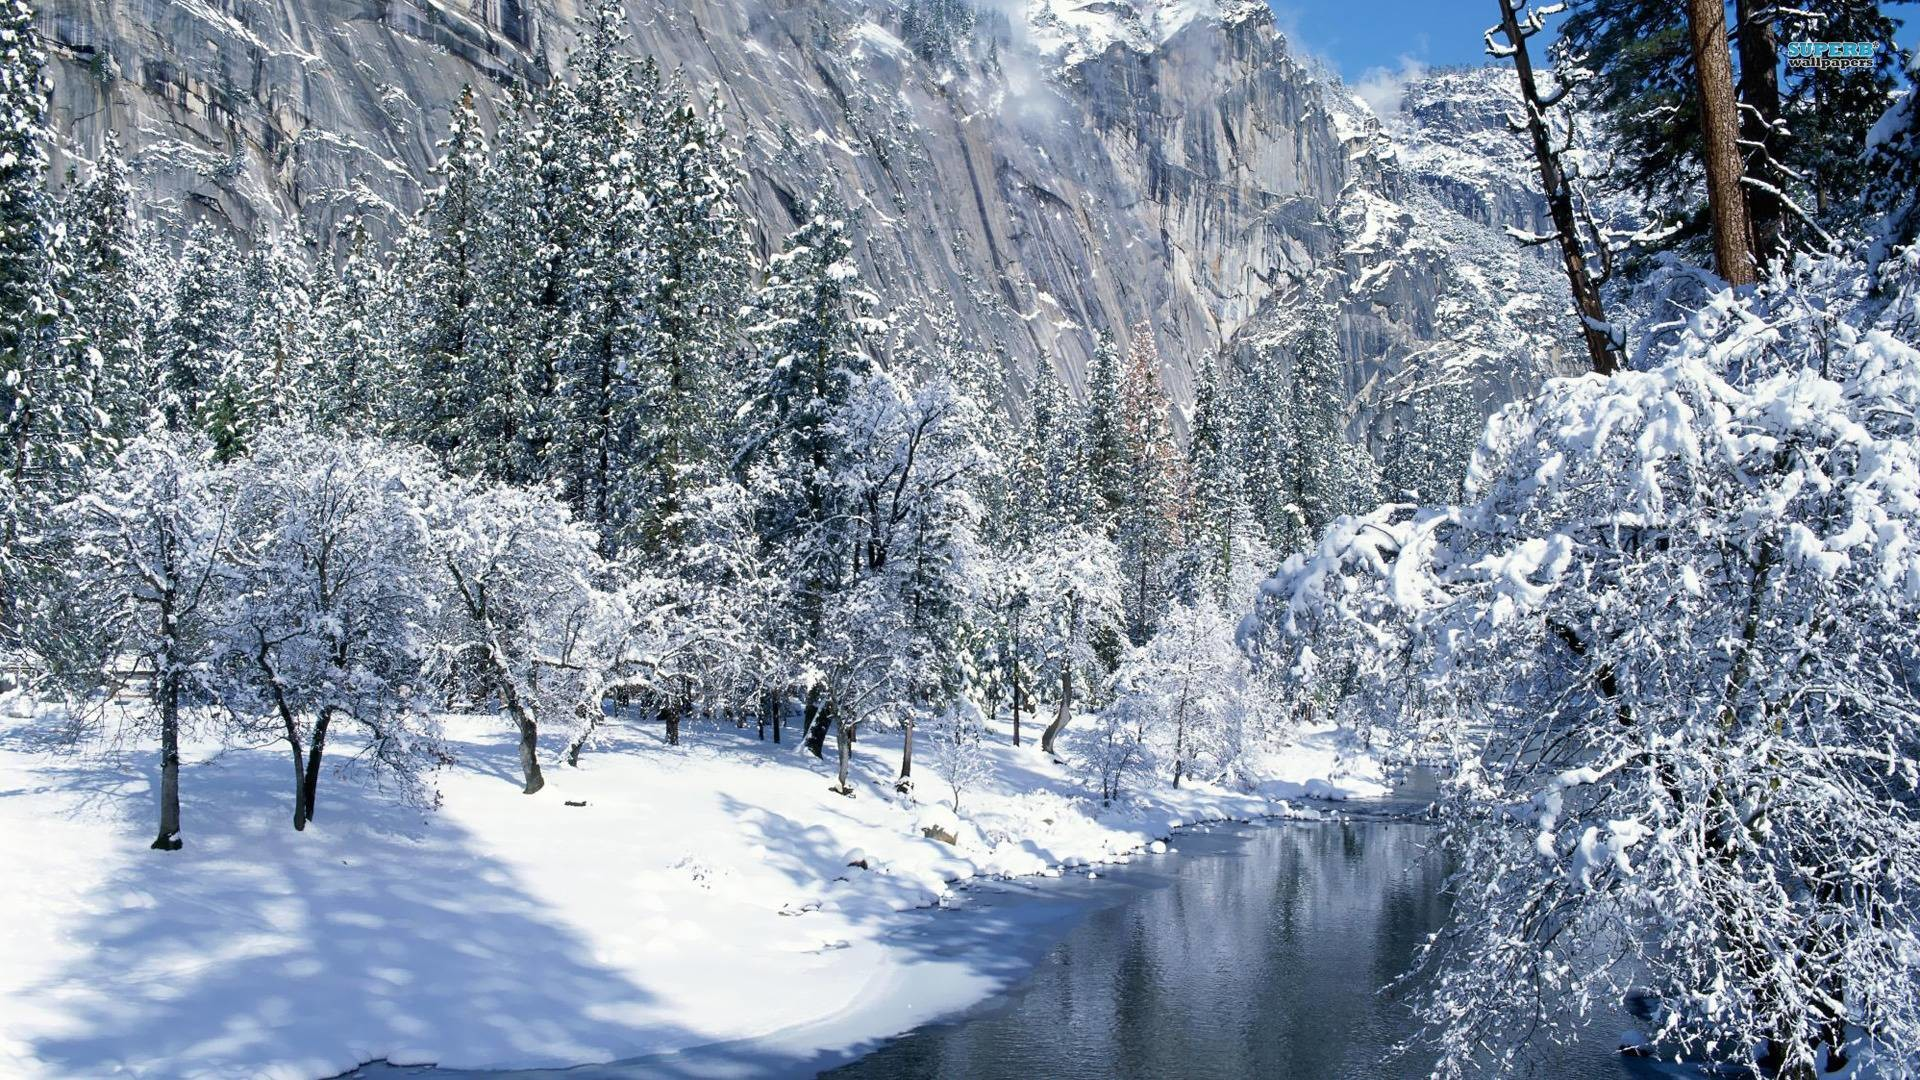 Res: 1920x1080, Creek in the snowy mountains wallpaper - Nature wallpapers - #